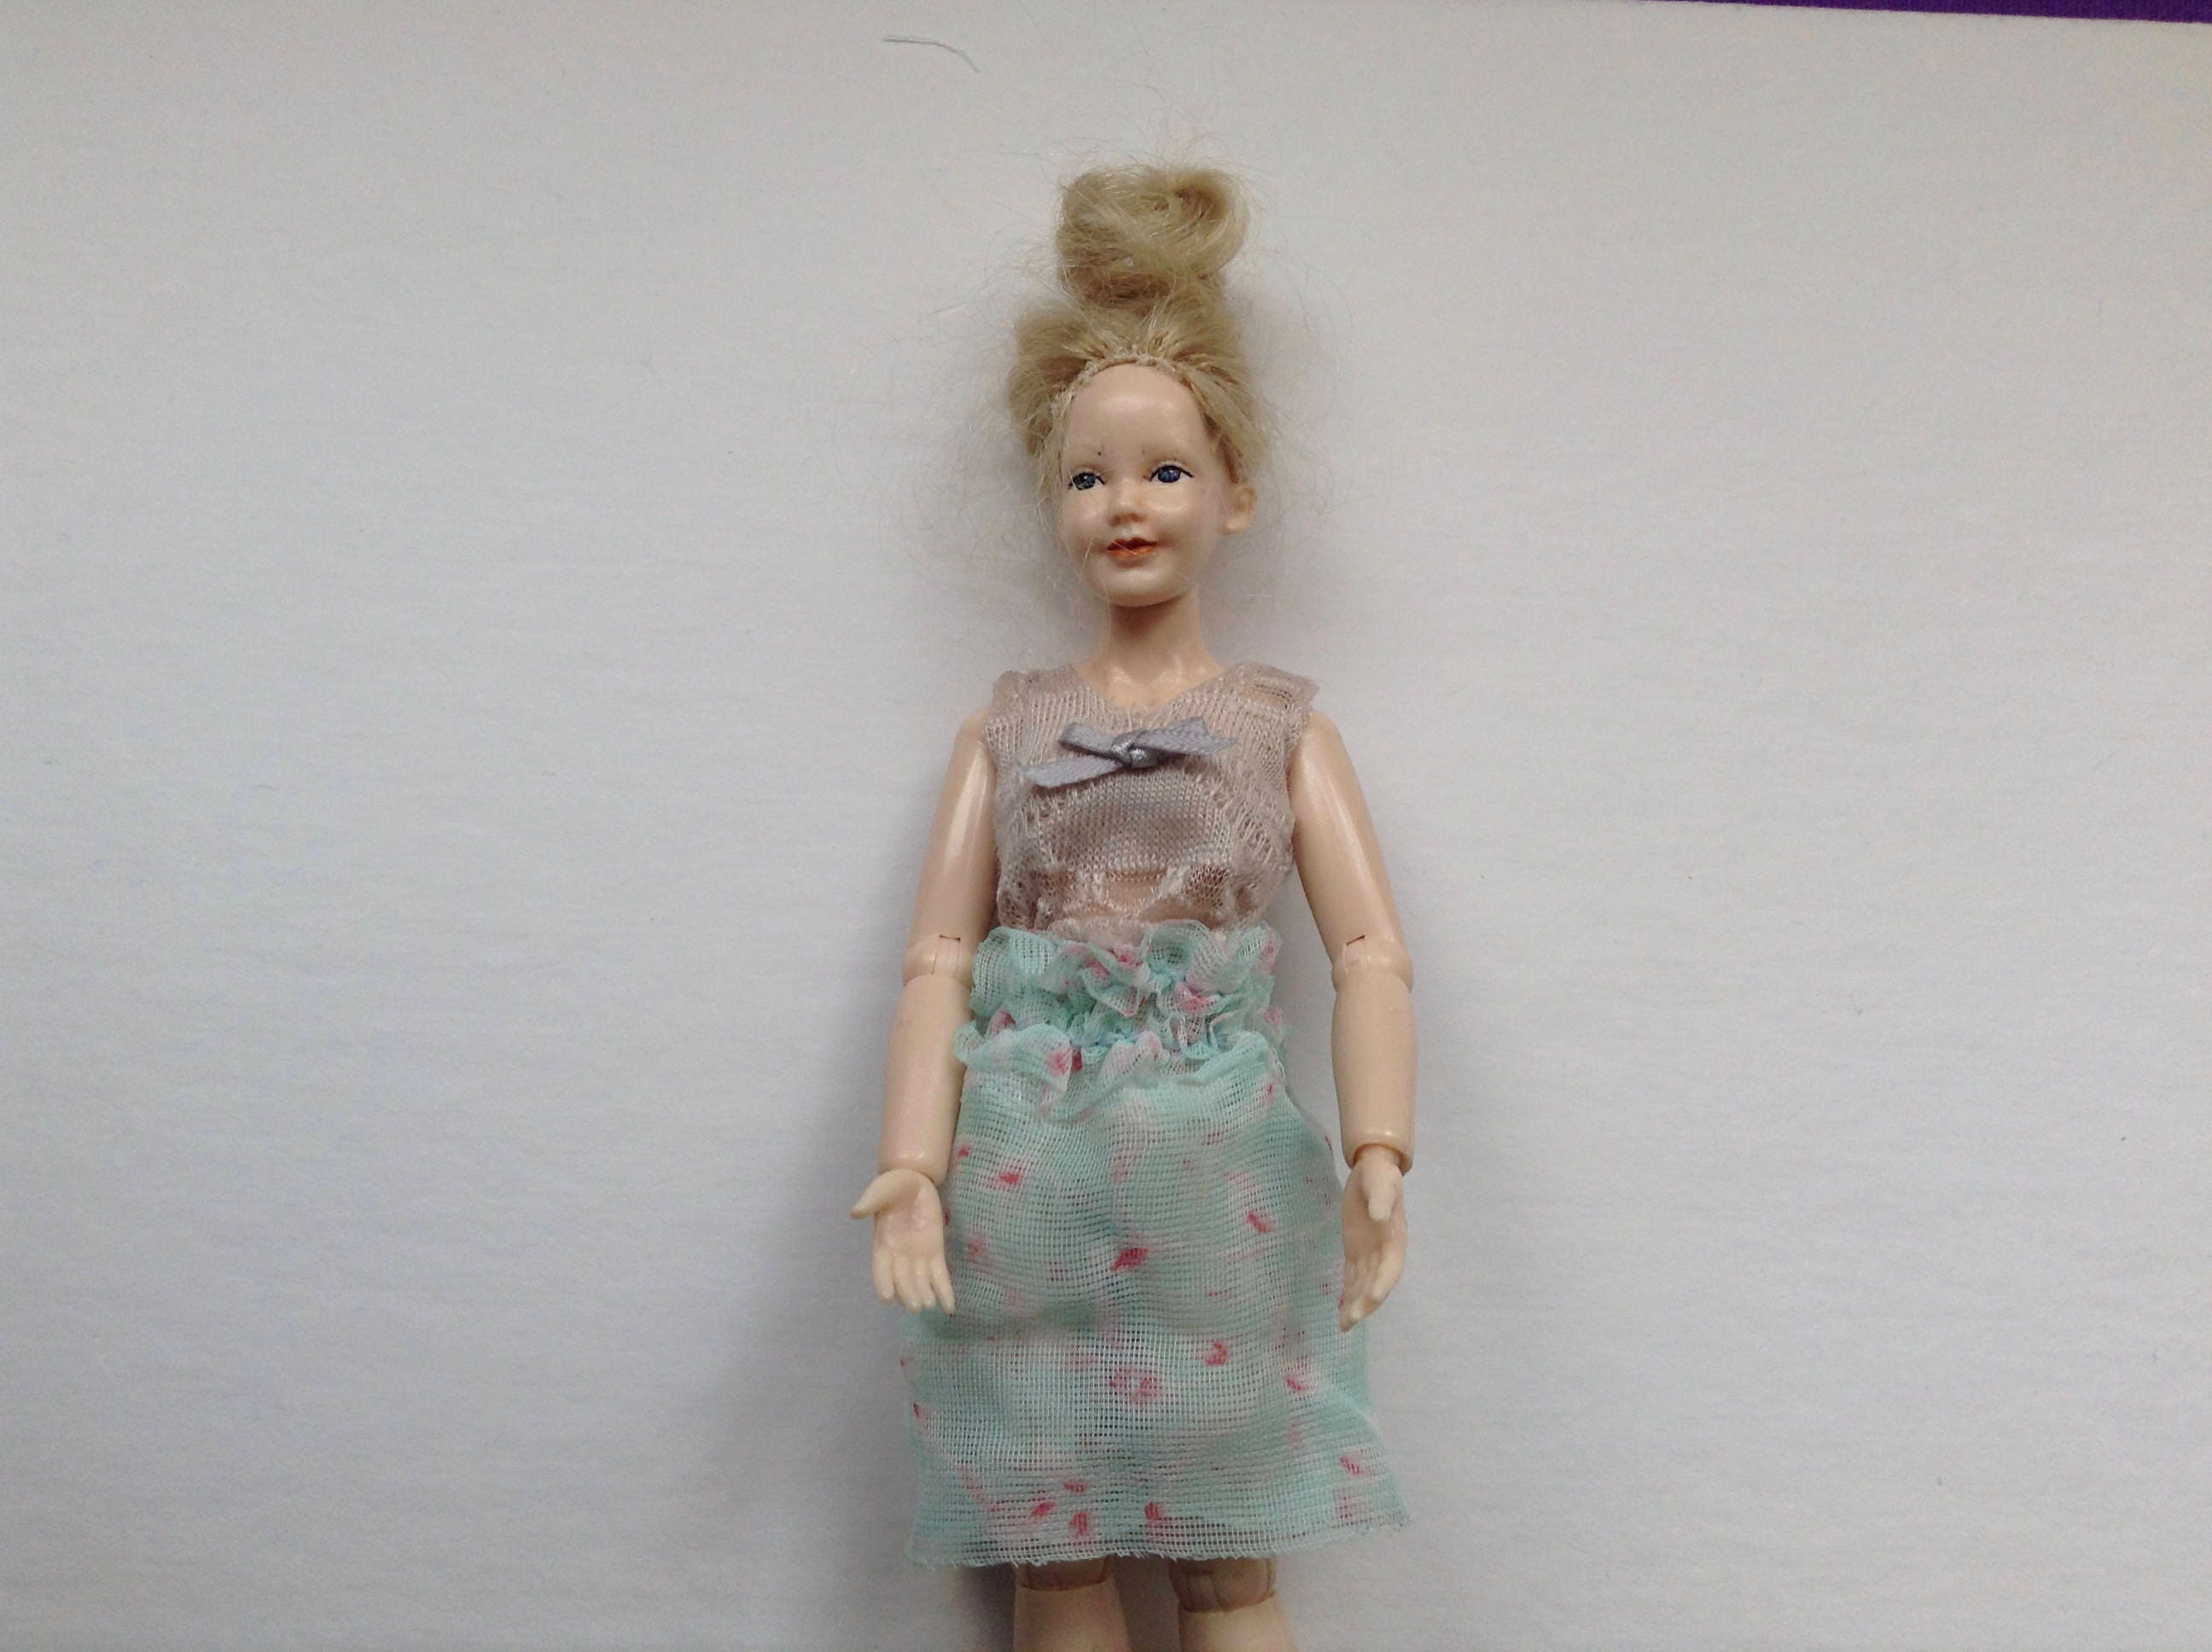 112 scale Women beige top with green floral net skirt for Heidi doll by Jings Creations